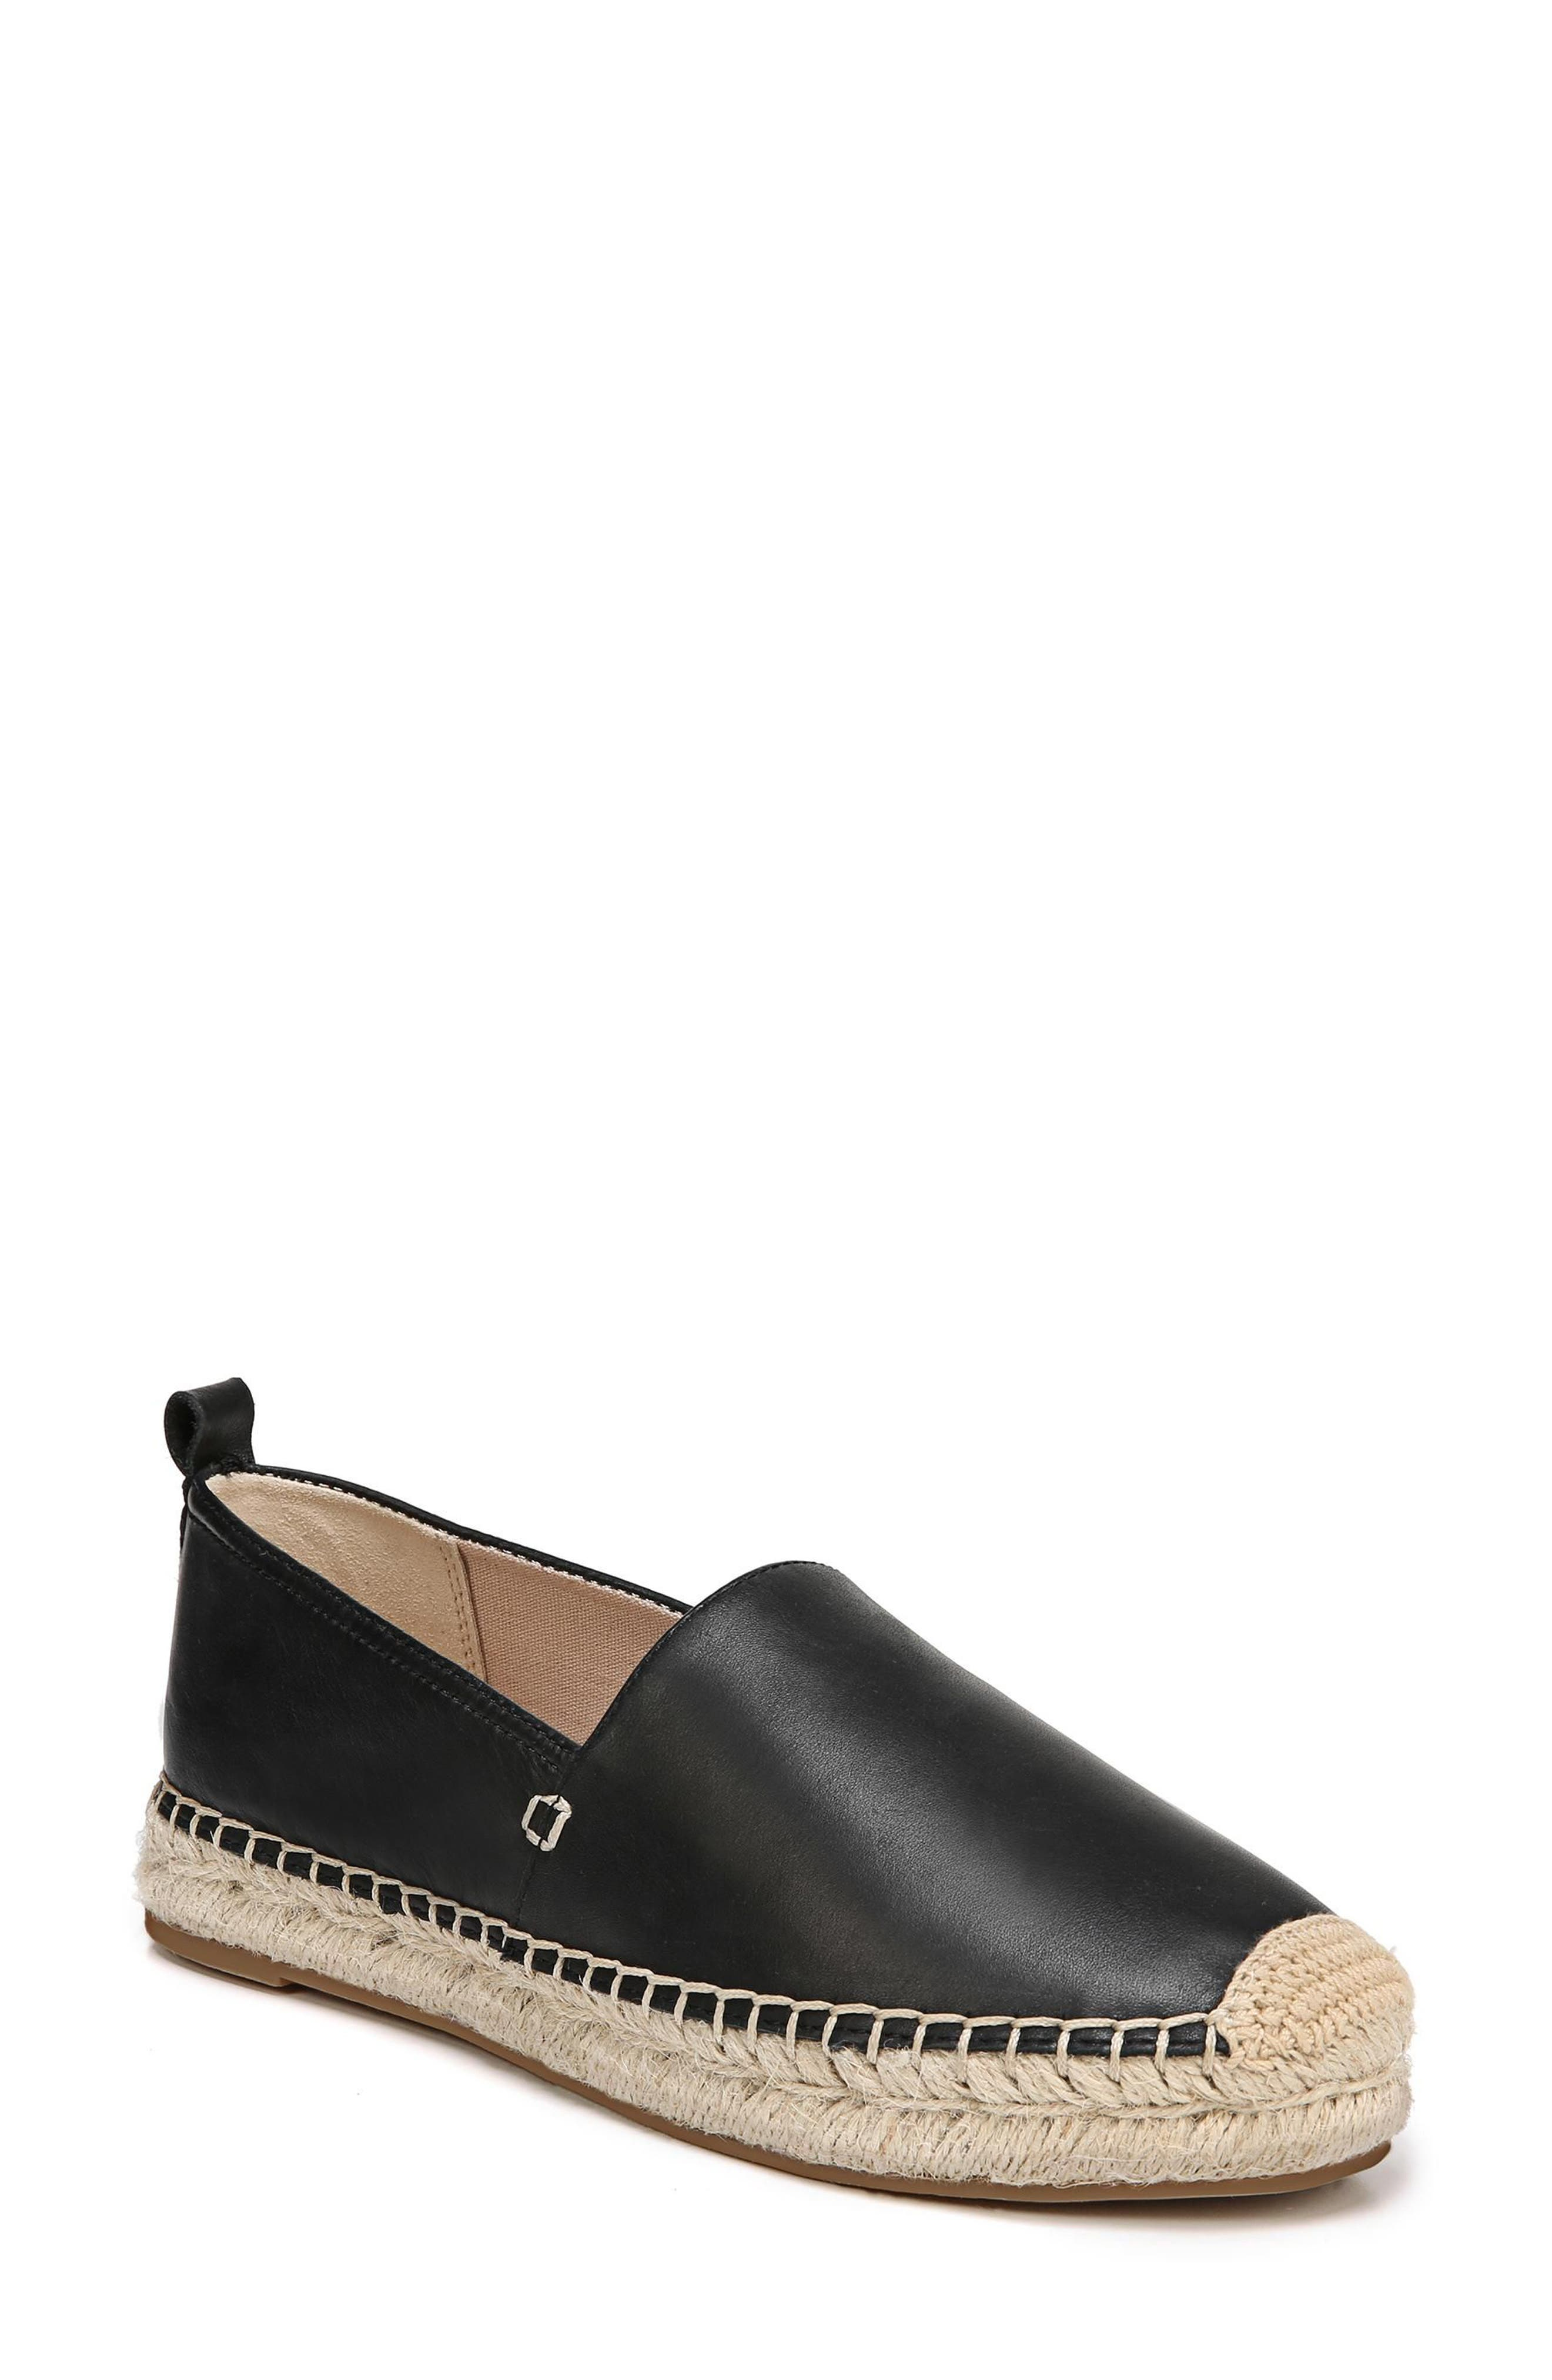 SAM EDELMAN Khloe Espadrille Flat, Main, color, BLACK LEATHER